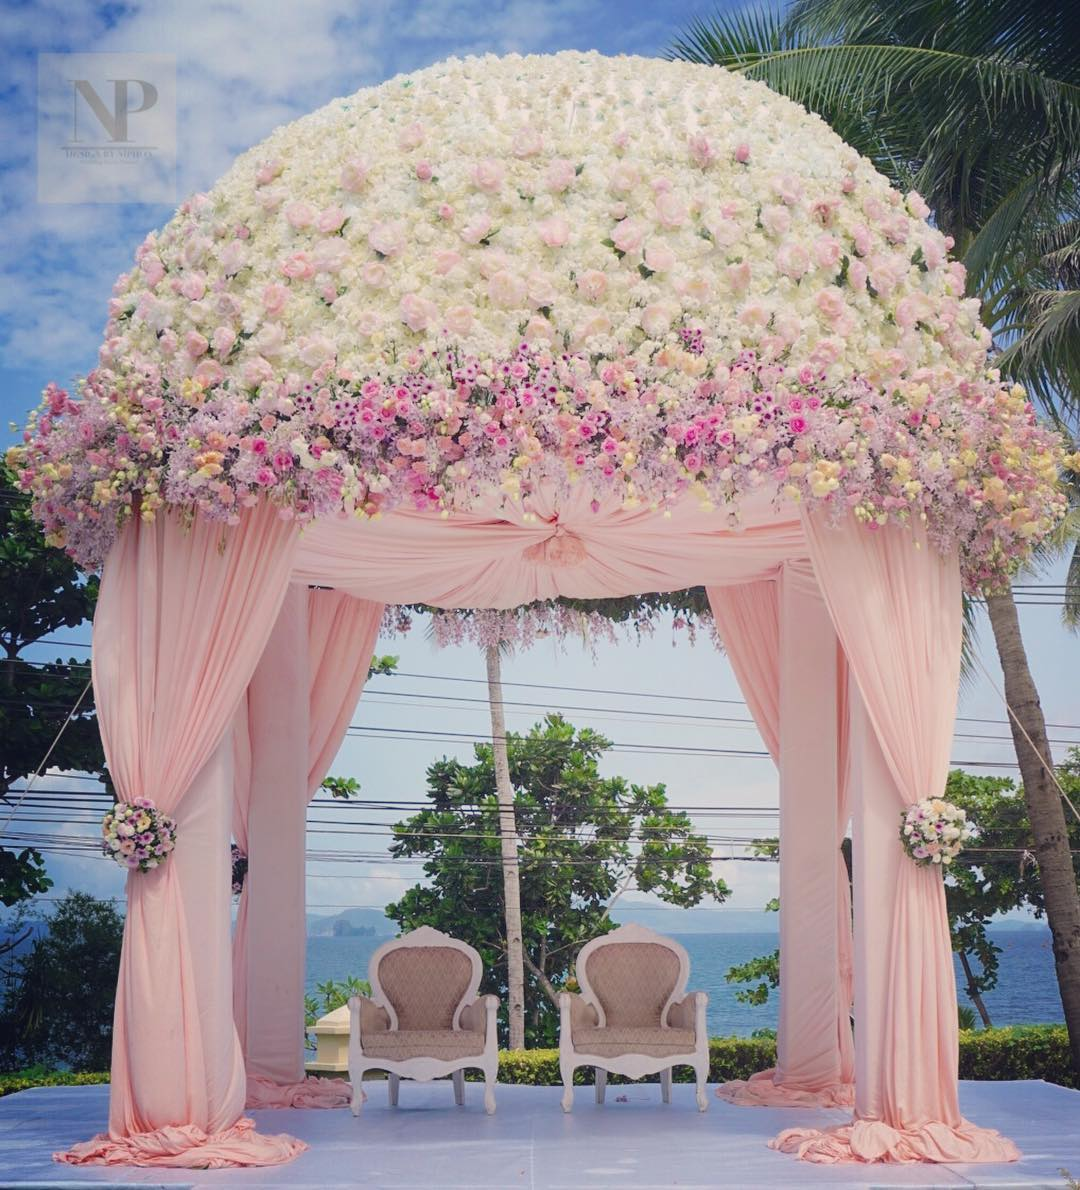 Dome shaped White and pink flower mandap with Baby Pink Drapes